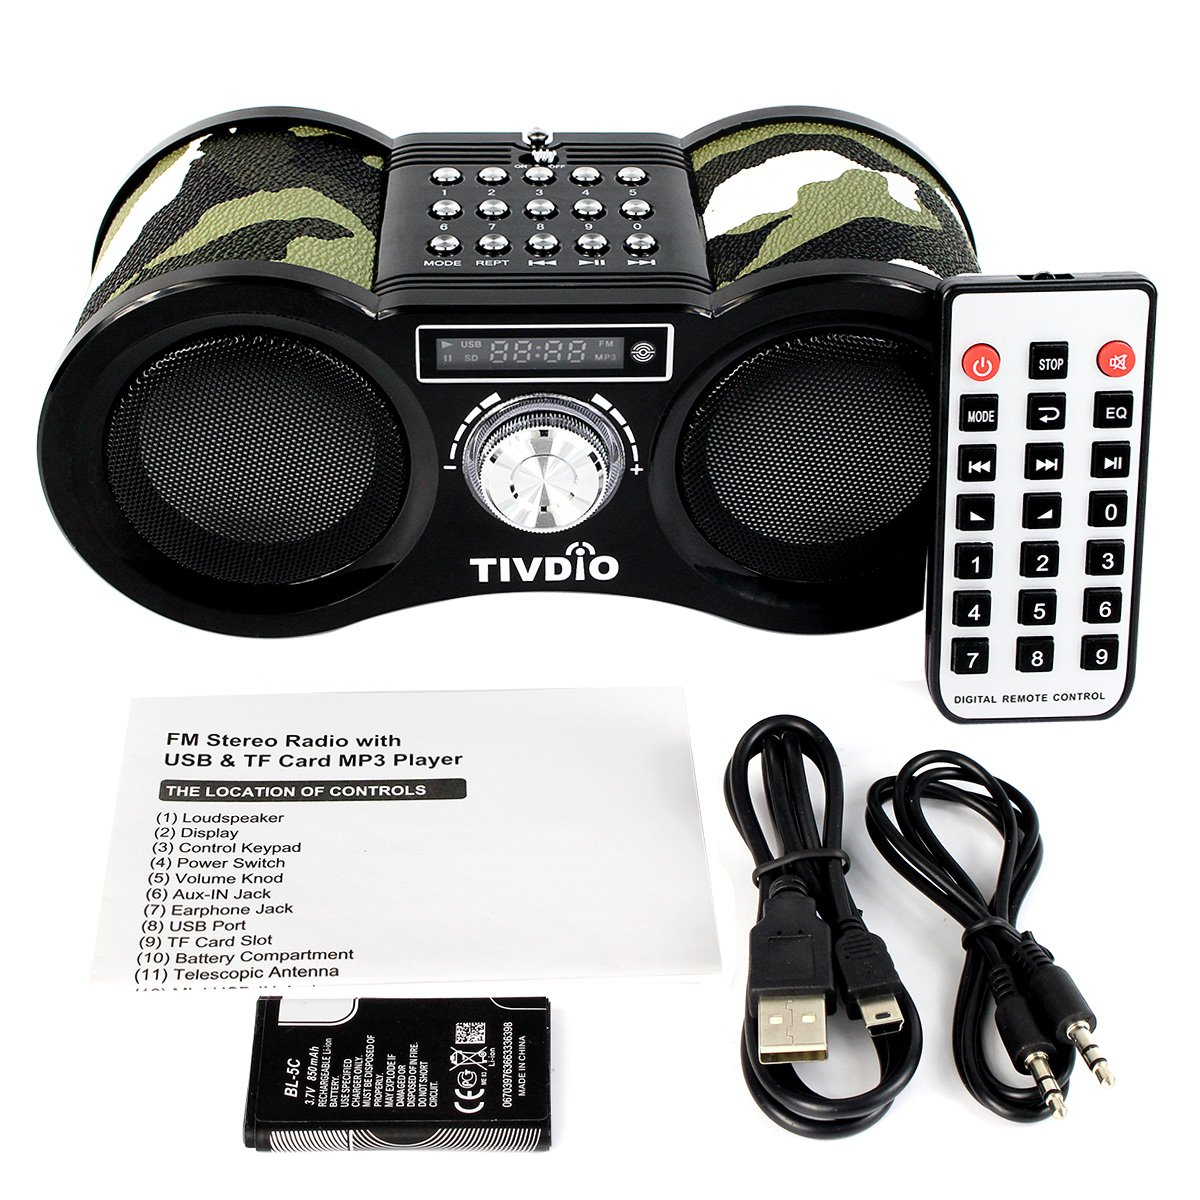 TIVDIO V-113 Portable Transistor FM Stereo Radio Support Mp3 Music Player Speaker Micro SD IF Card Aux Line In Remote(Camouflage) by TIVDIO (Image #7)